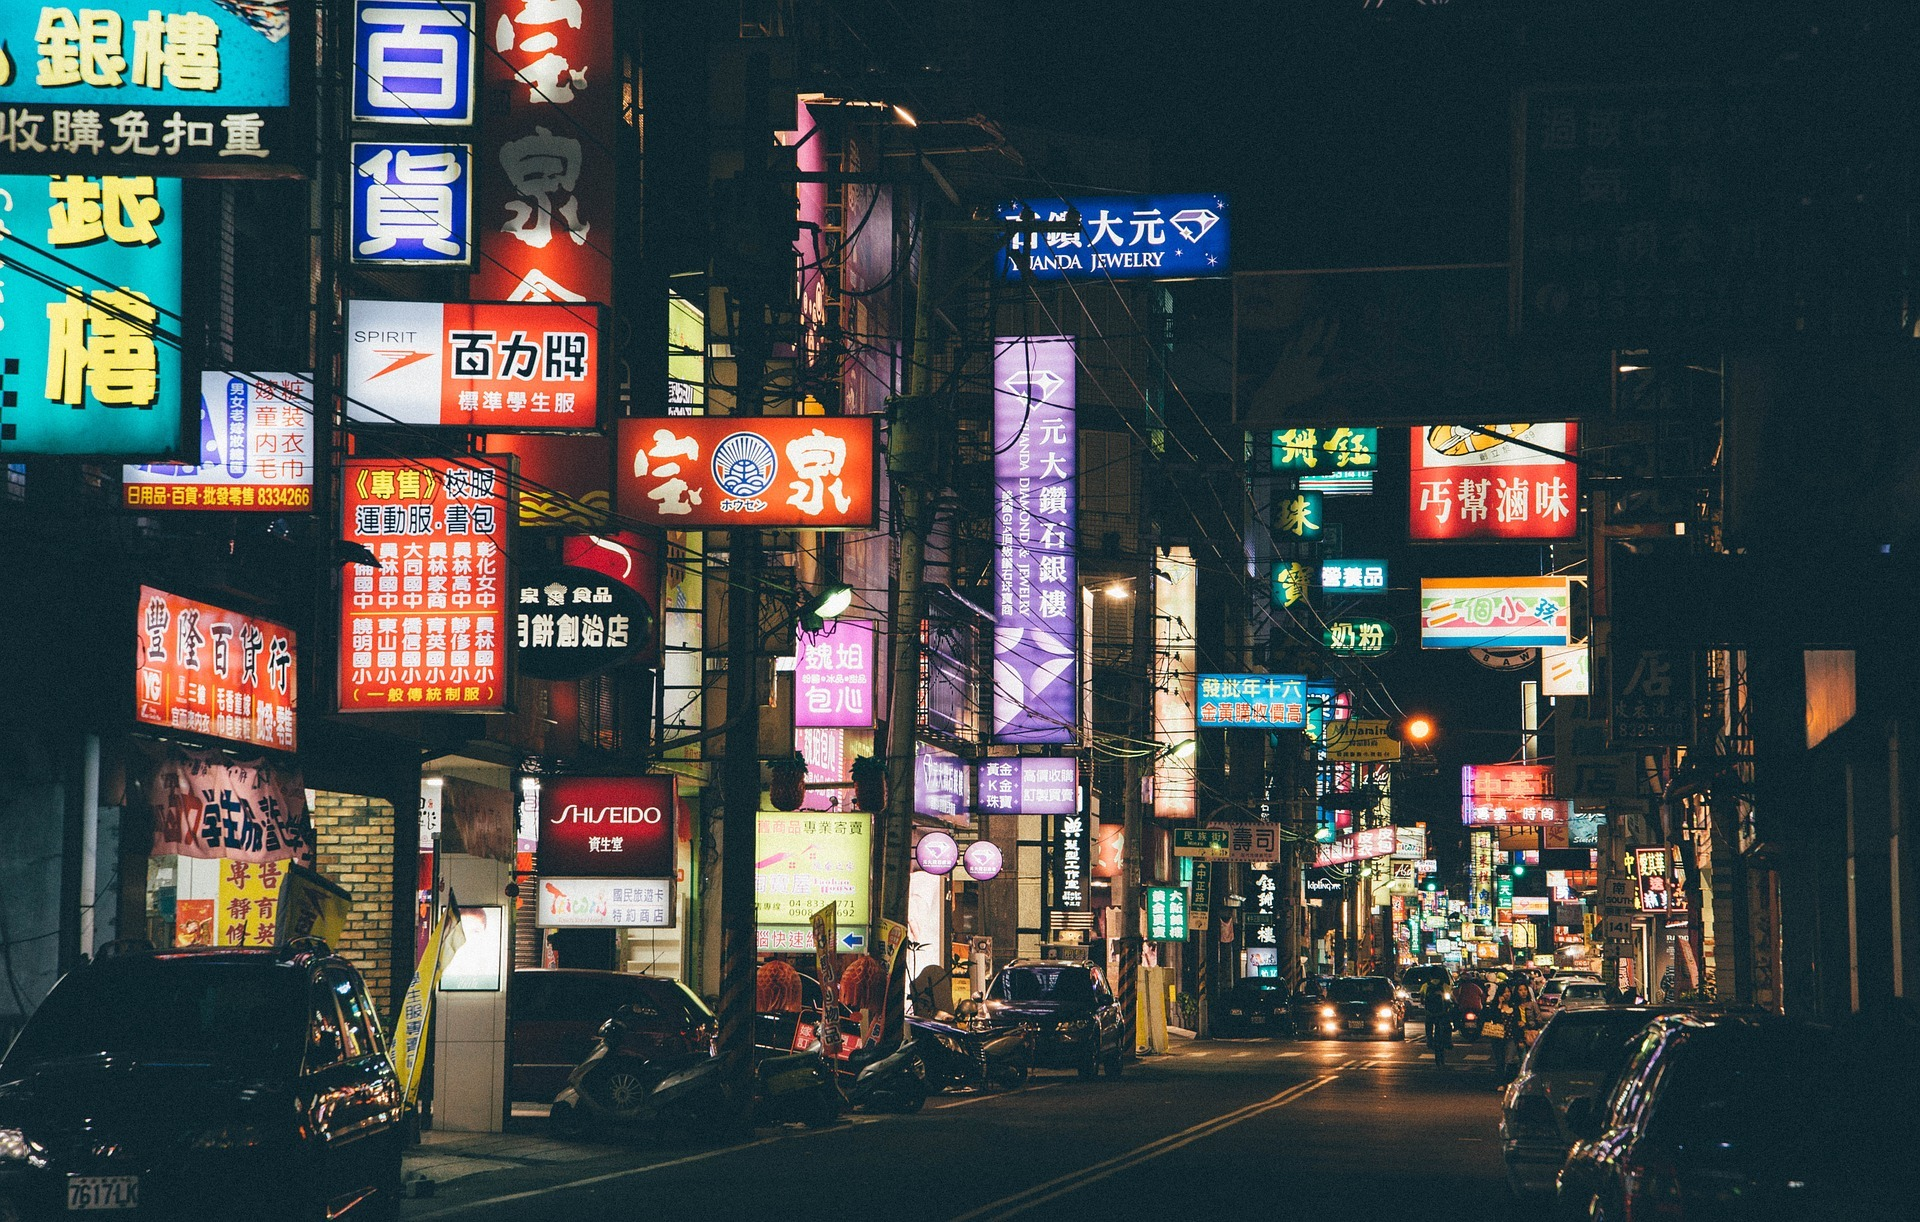 Chinese Downtown Area at Night